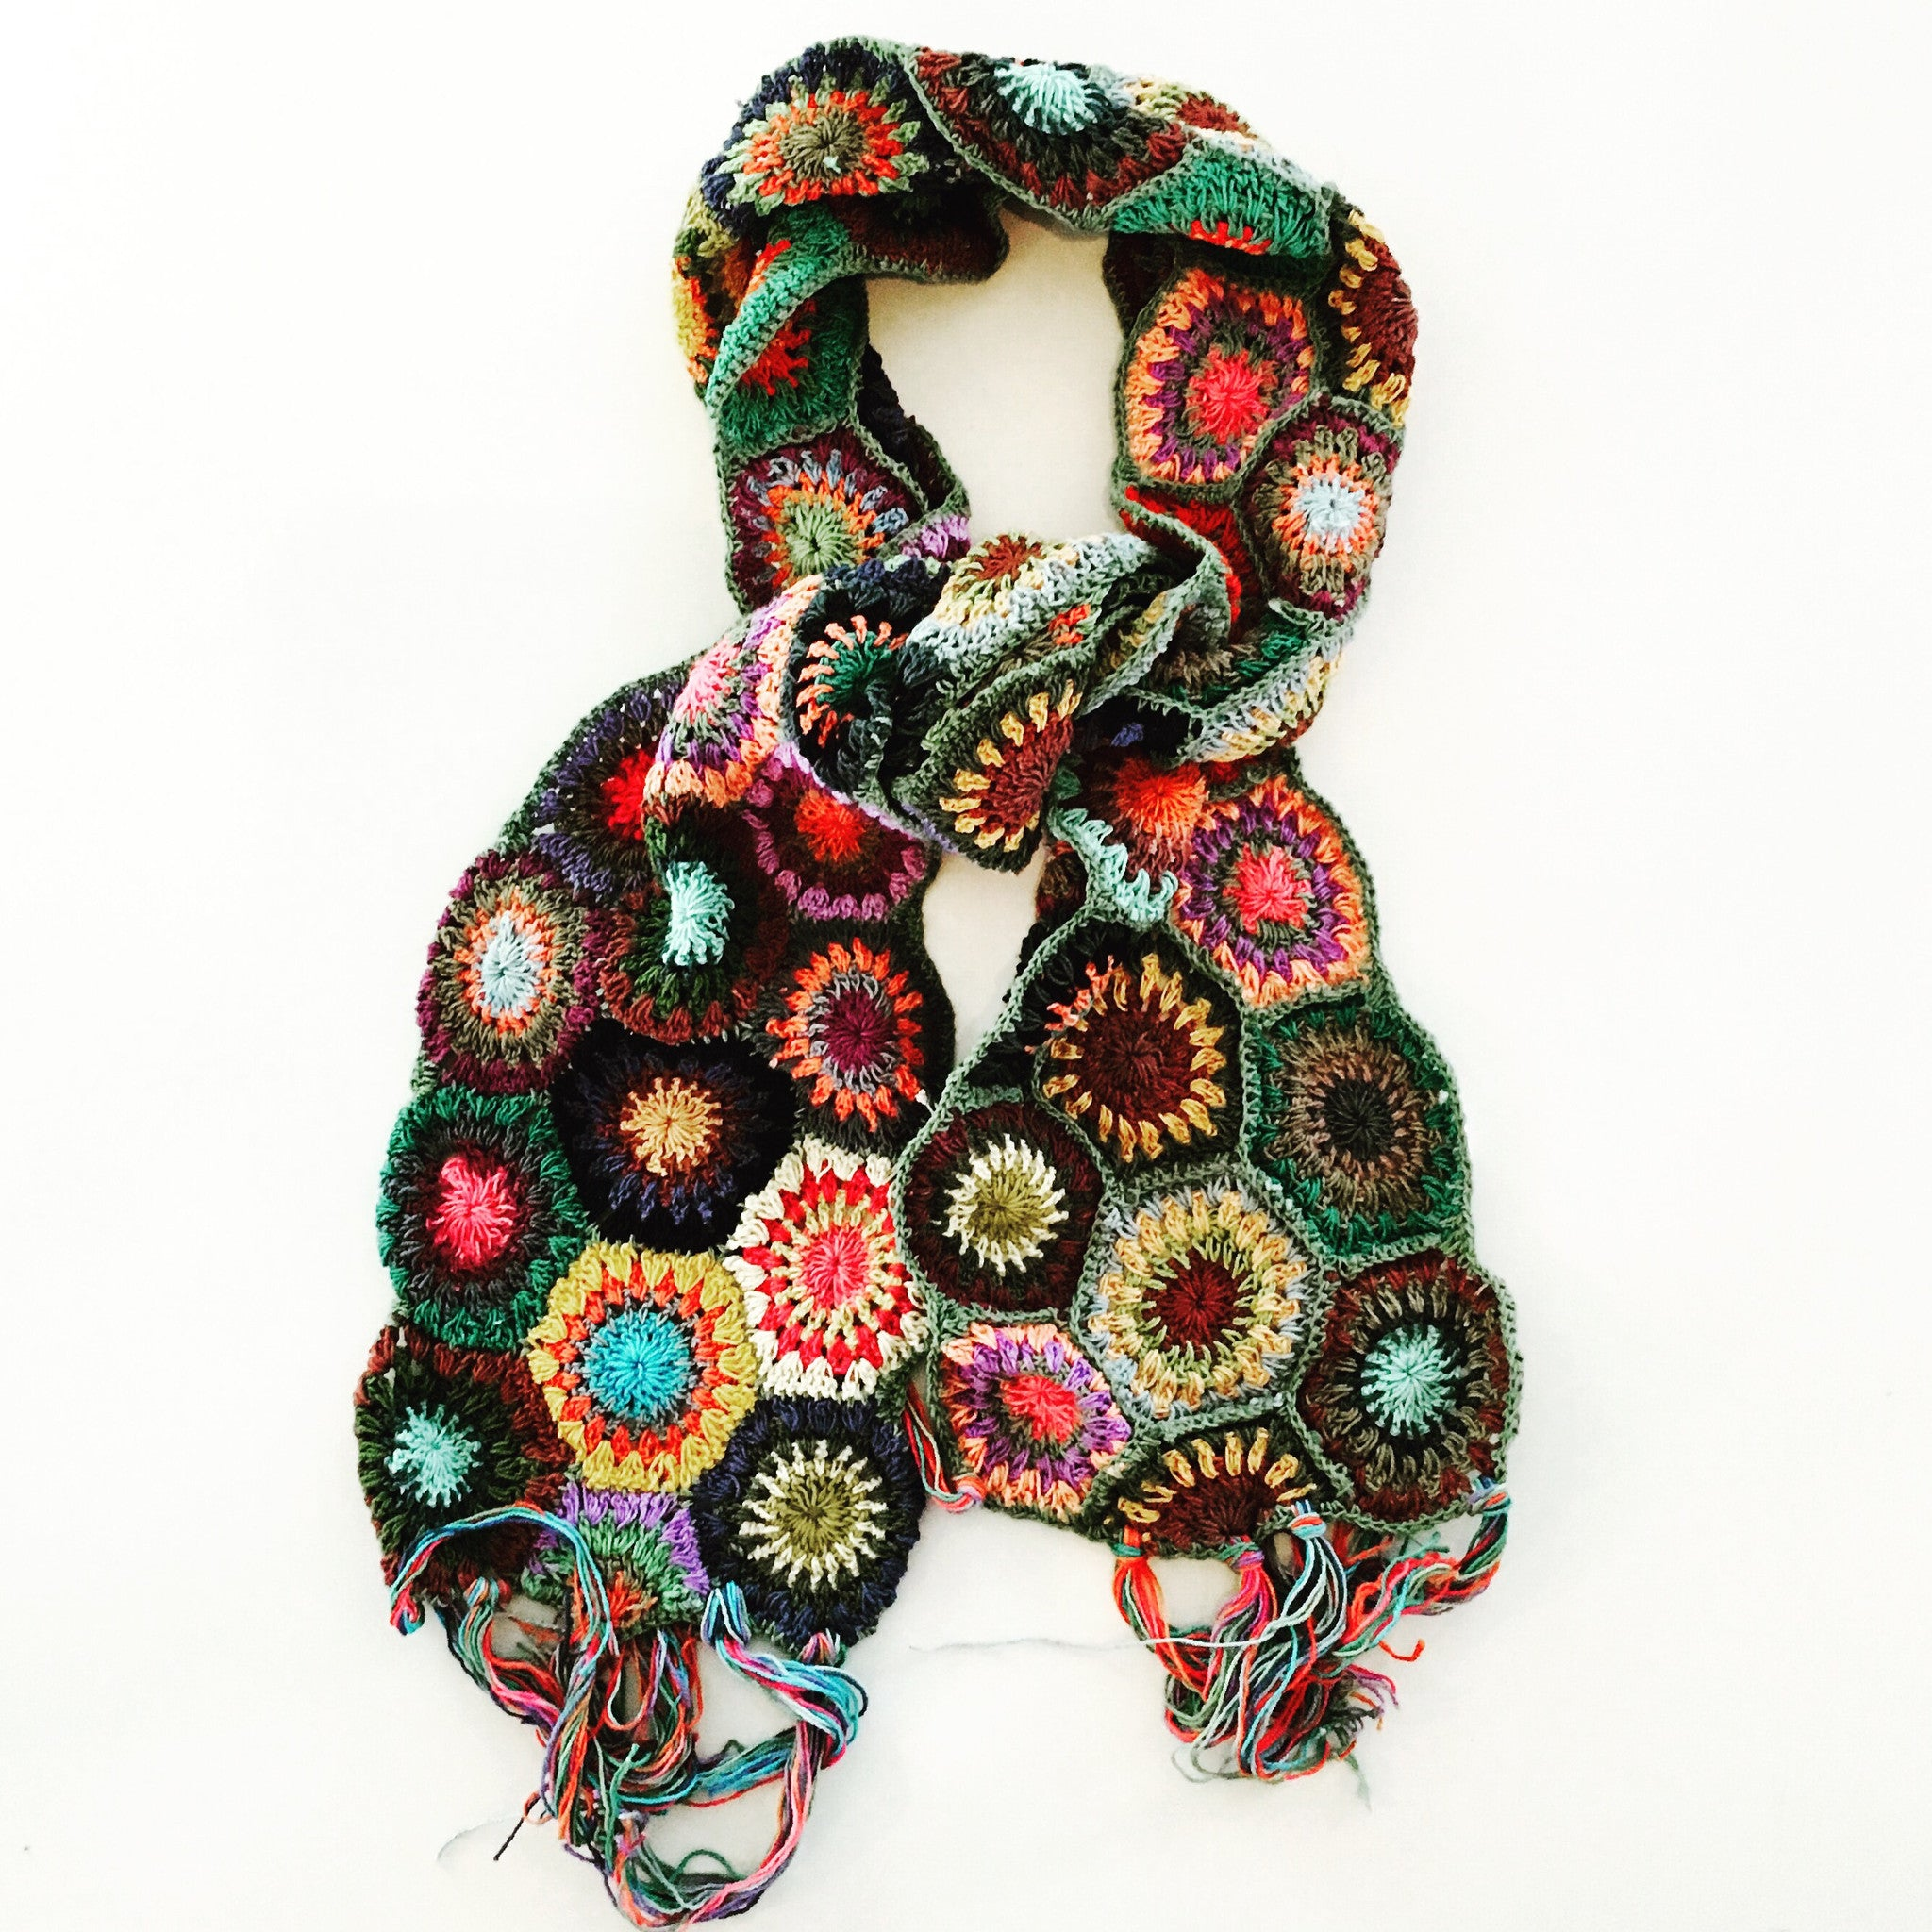 Outerwear,hand crocheted, 100% cotton, multi colored scarf. Made in Nepal. Portion of proceeds supports GlobalDentalRelief.org.  Size: 65 inches long plus 6 inch fringe